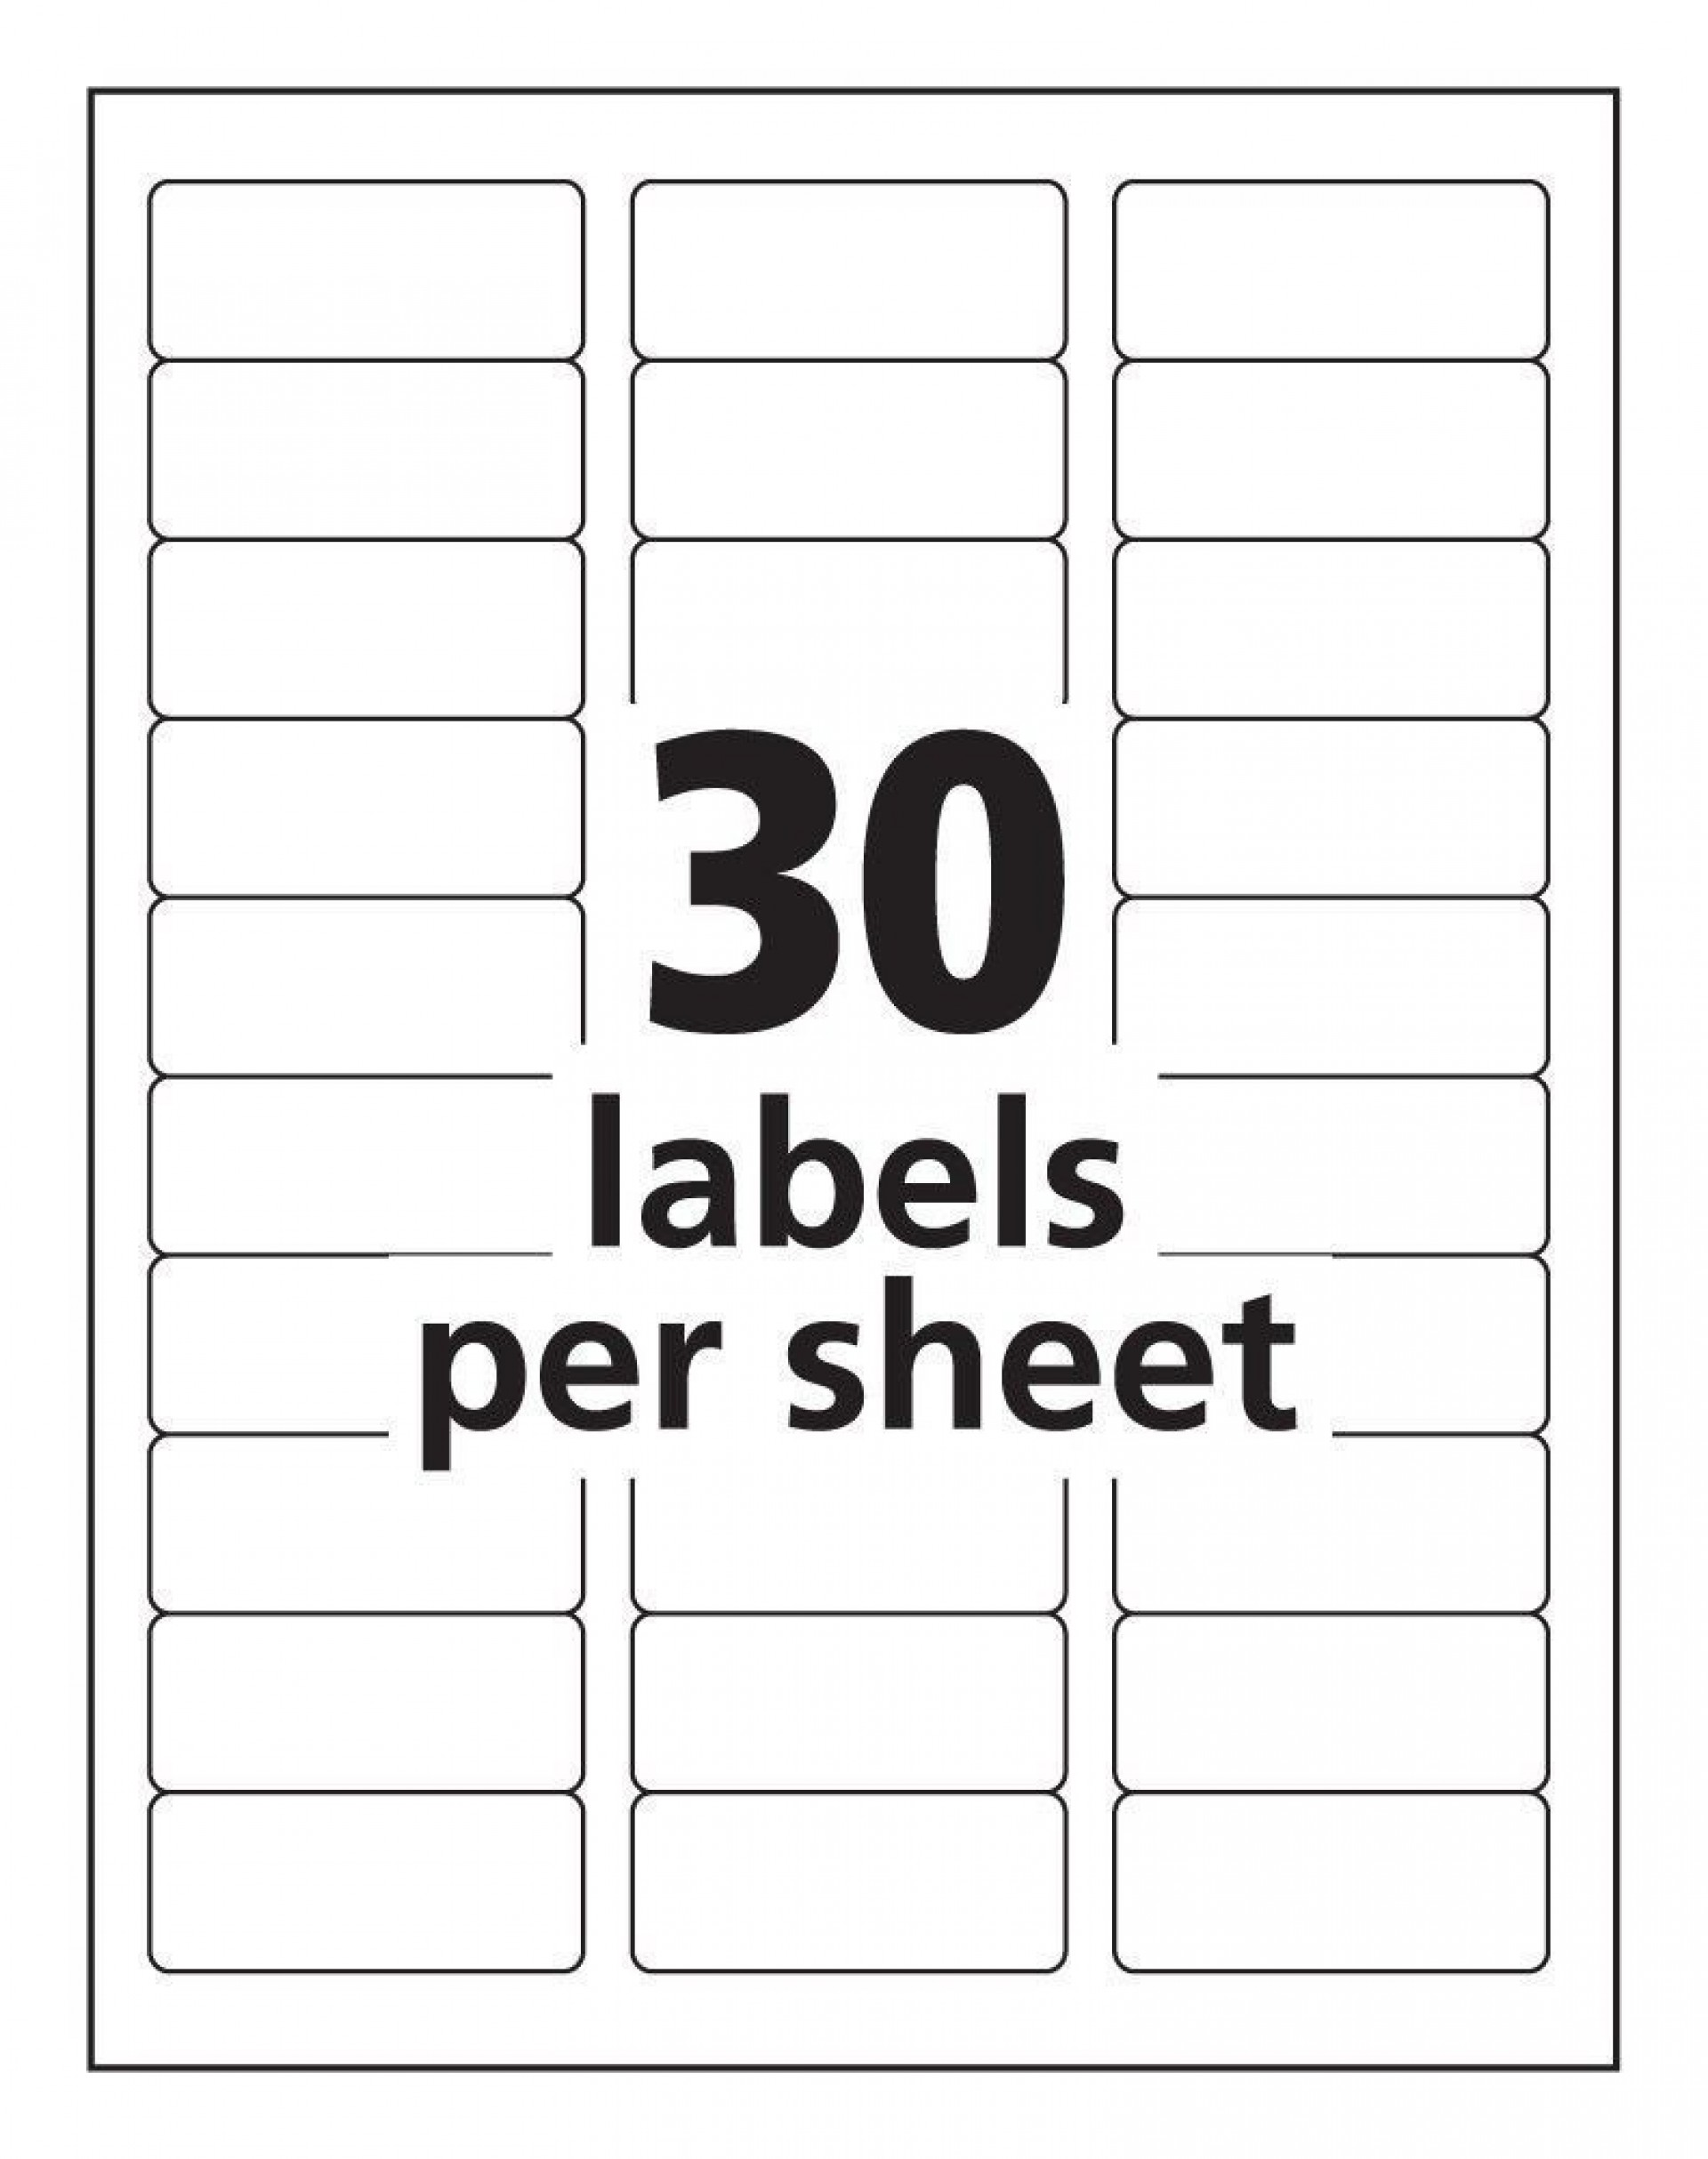 002 Fantastic Free Printable Addres Label Template Idea  Templates For Word 5160 16 Per Sheet Shipping1920